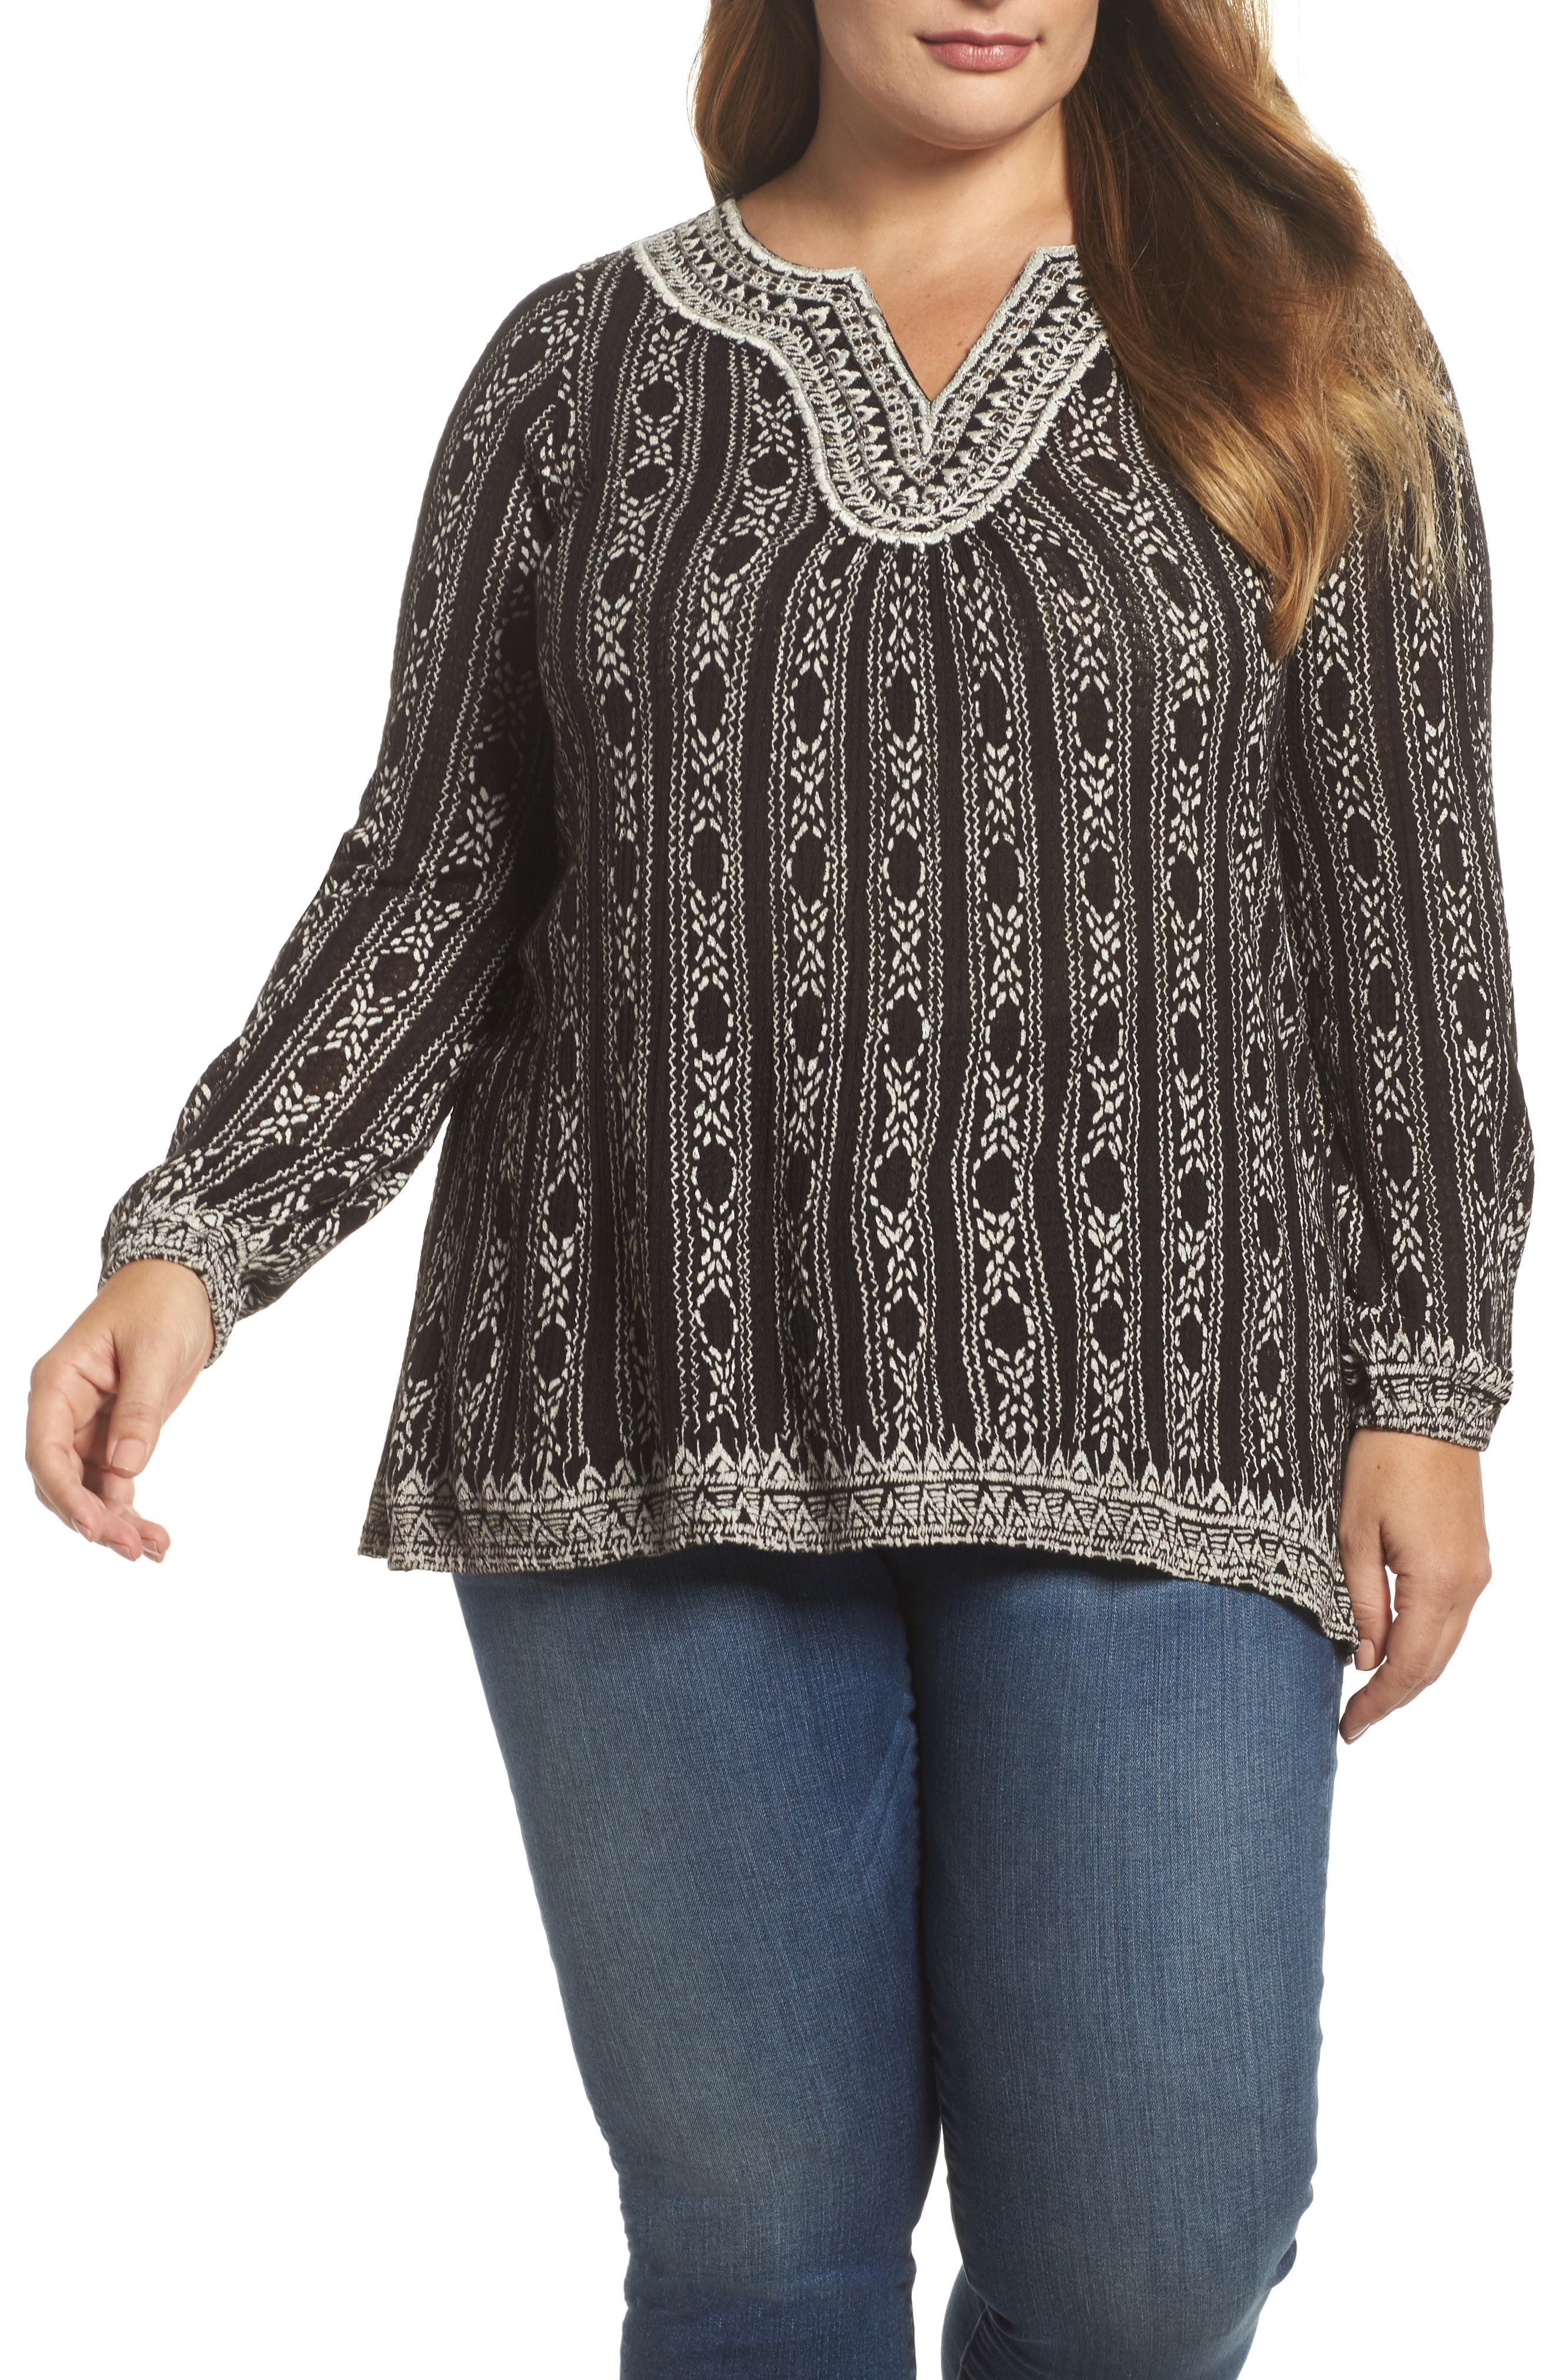 Main Image - Lucky Brand Drop Needle Embroidered Top (Plus Size)